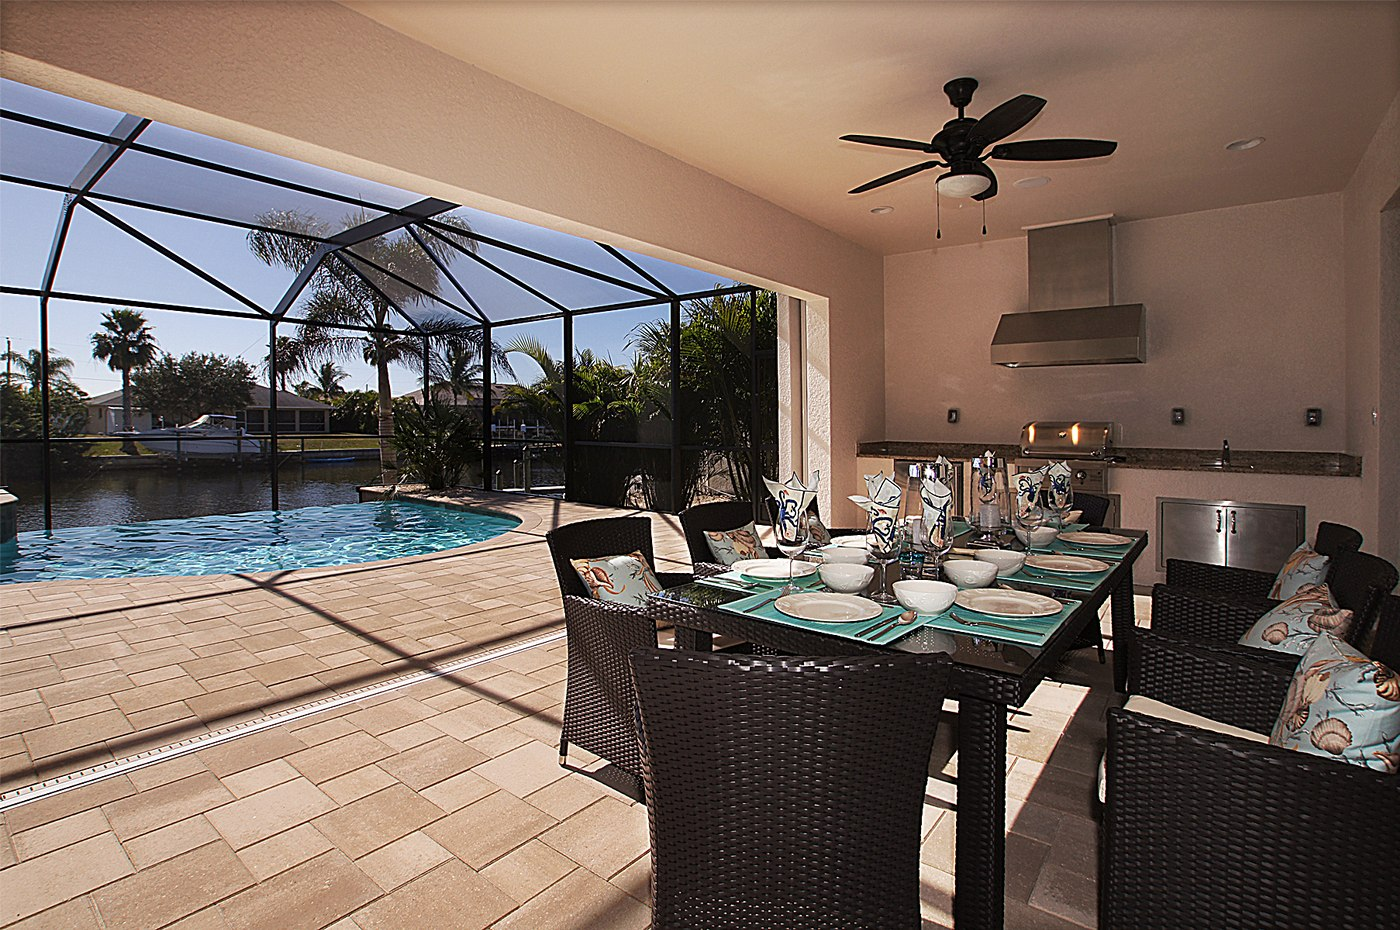 Pool Area in the rental home